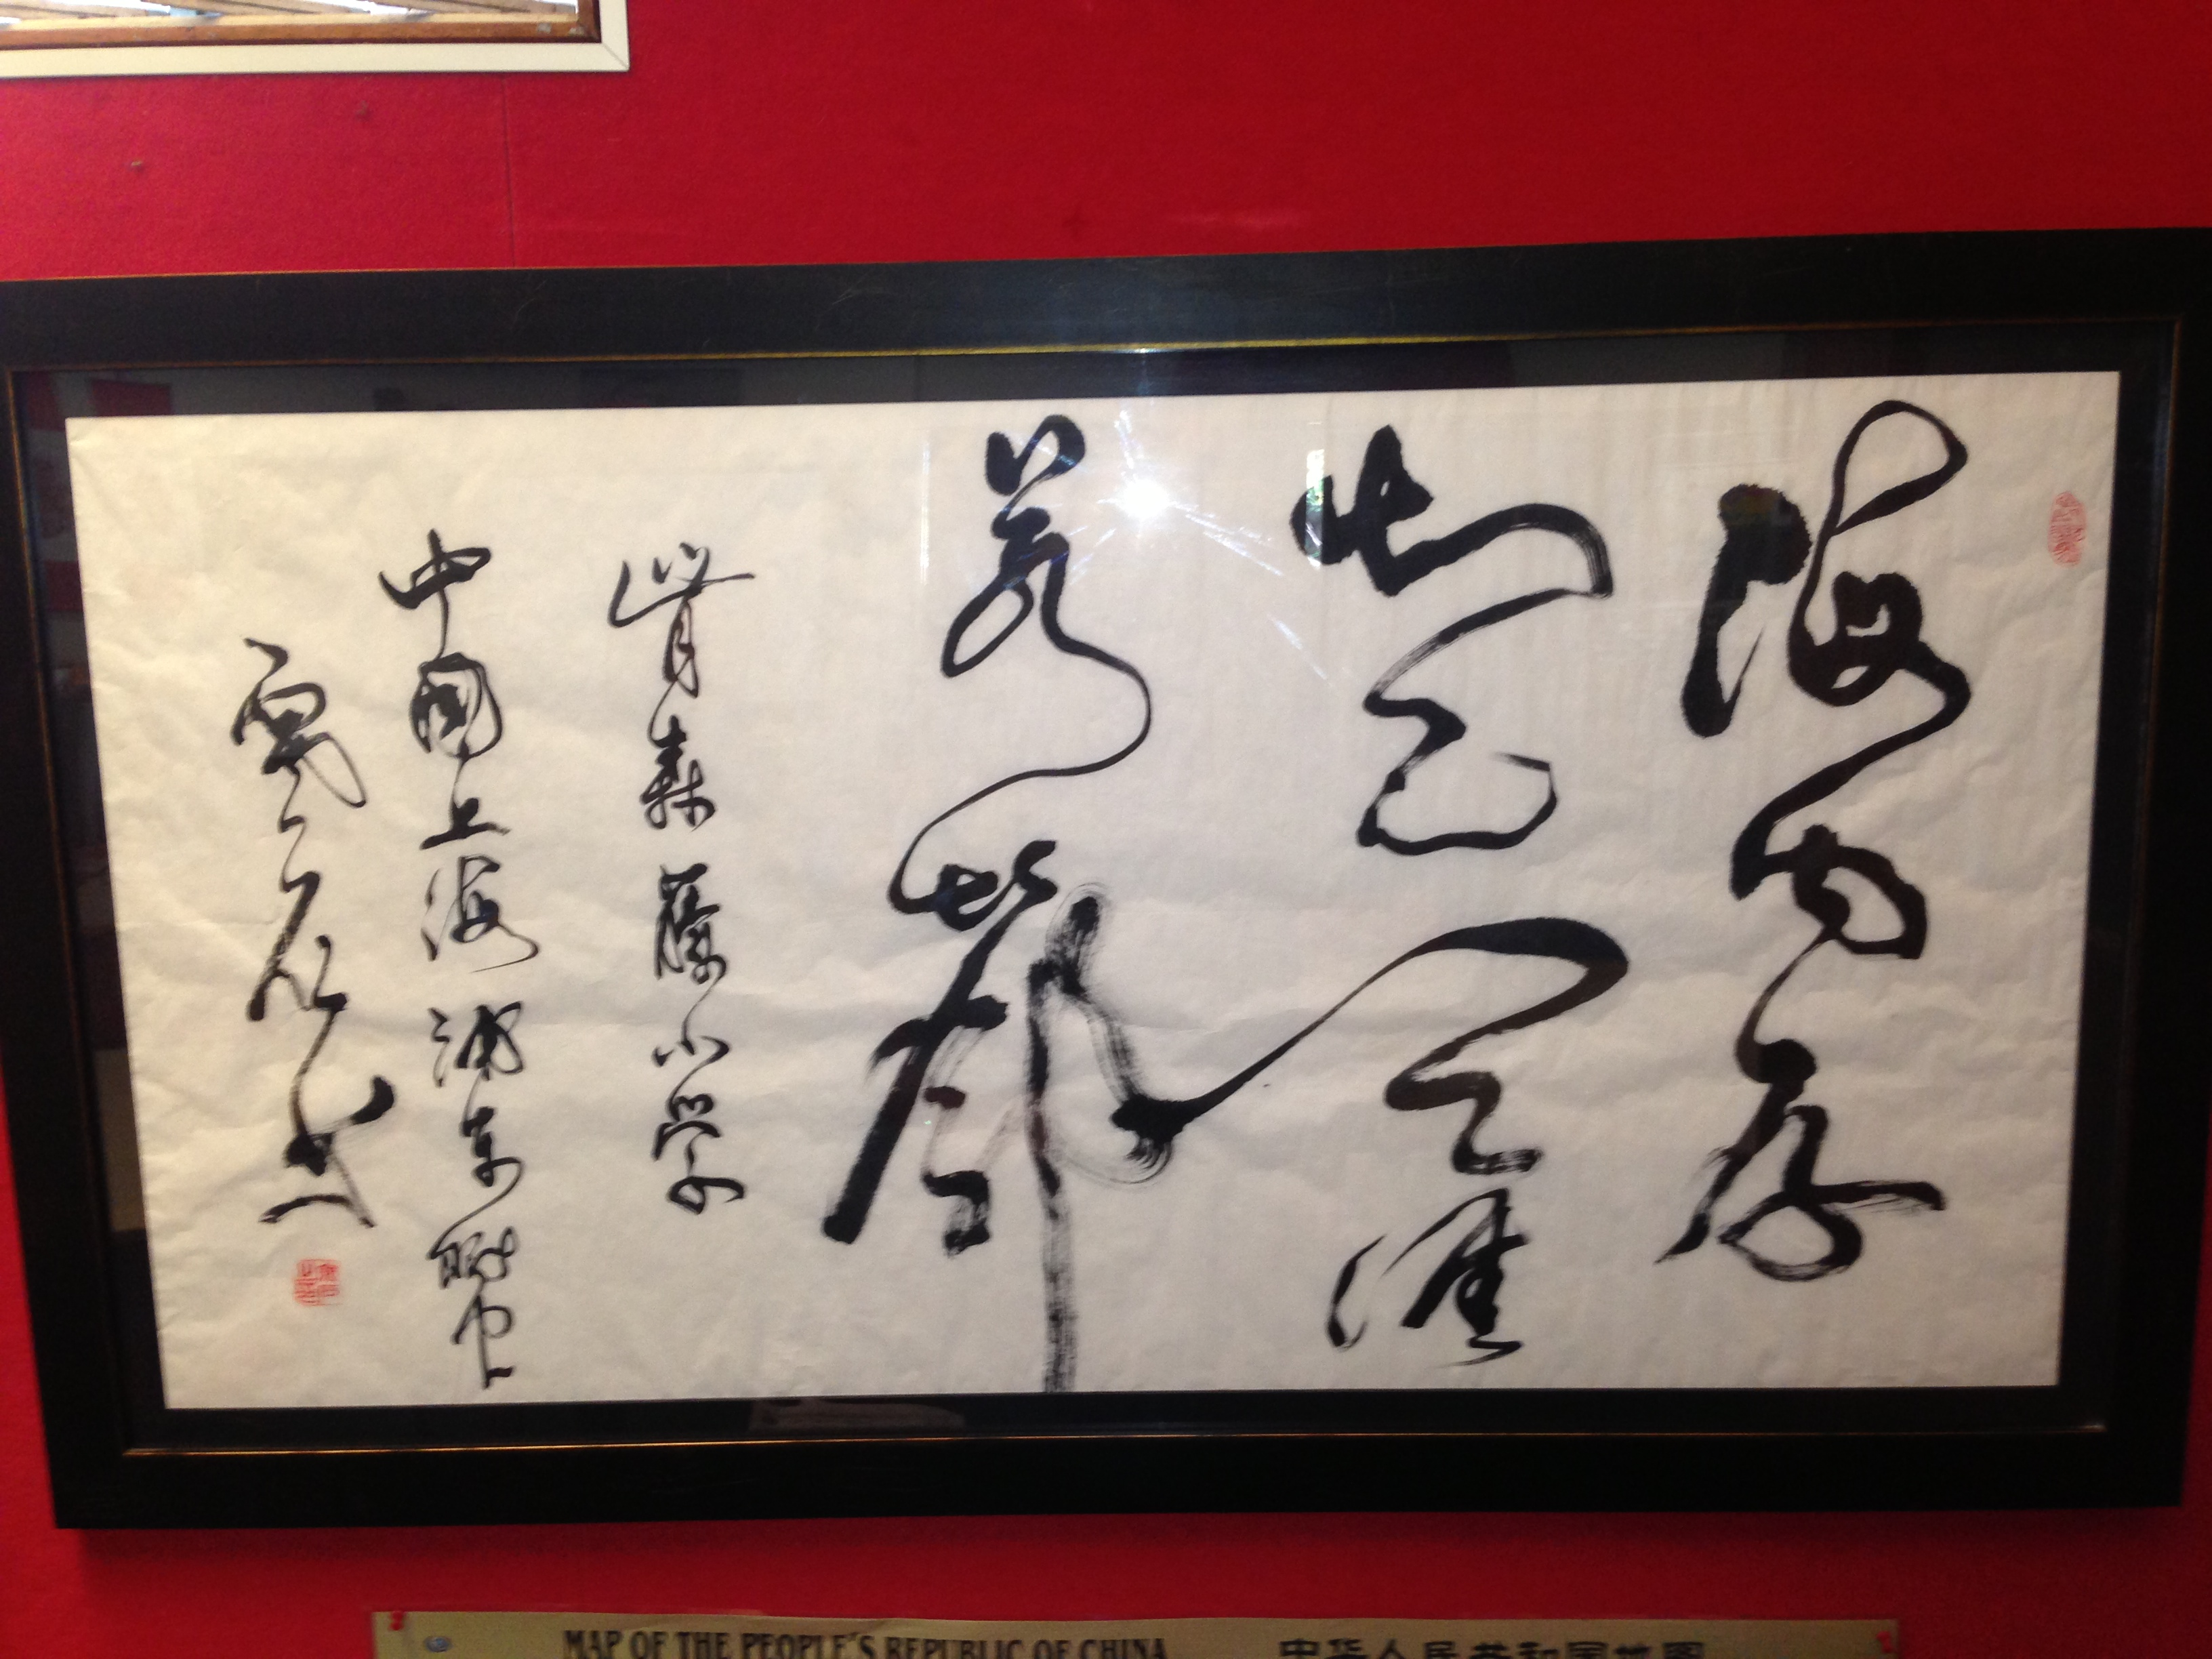 'A greeting of friendship across the ocean', this script was a gift to Kensington Public School from the head of the Shanghai School of Calligraphy.